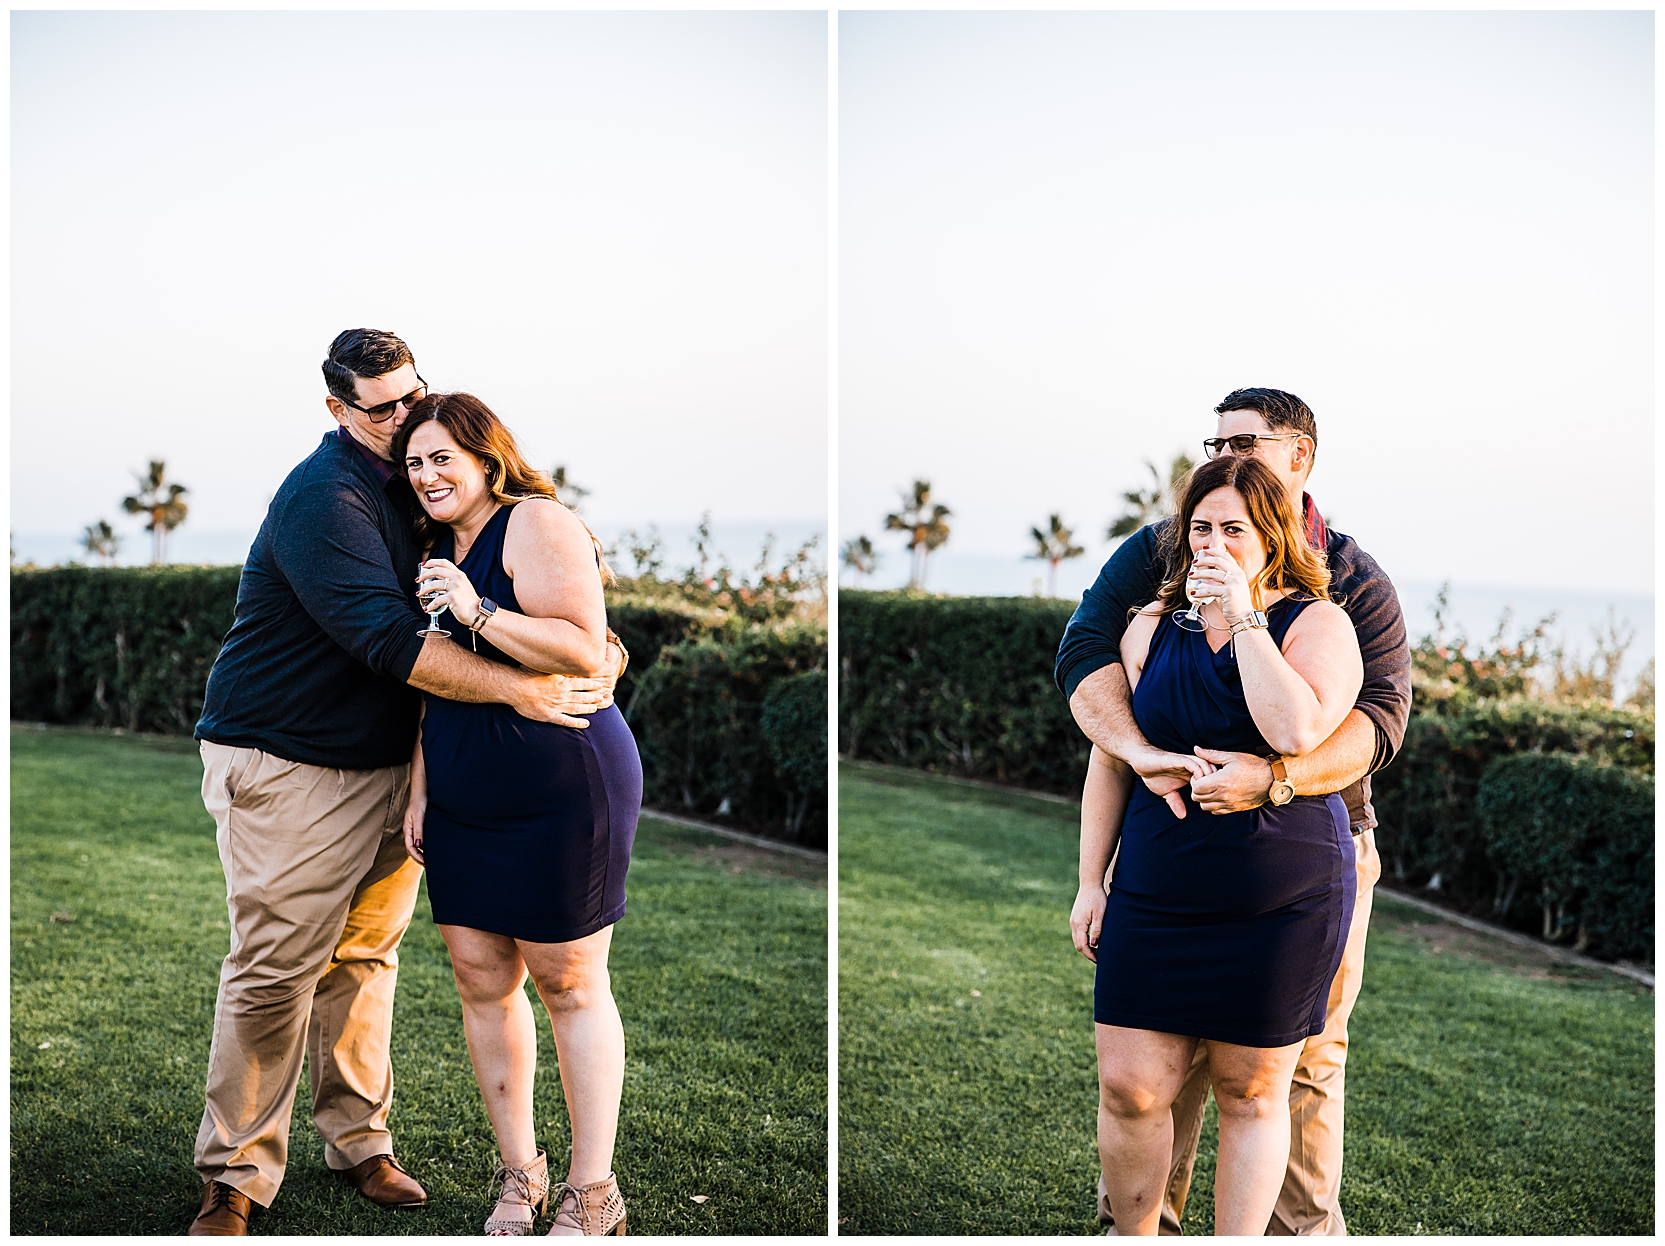 jessicafredericks_huntingtonbeach_proposal_sunset_engagement_0021.jpg